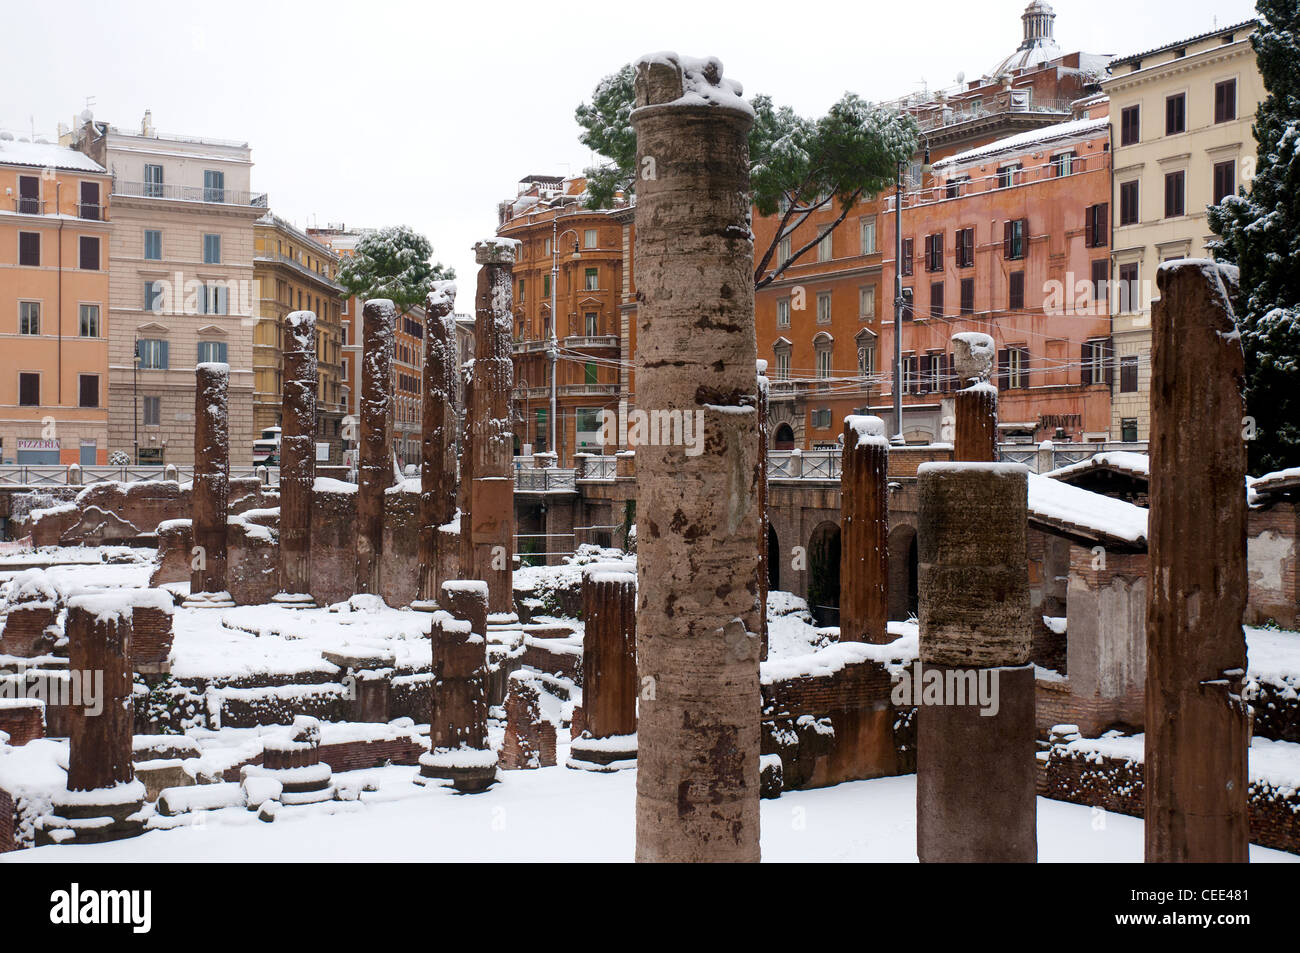 The snow covered archaeological area of Largo di Torre Argentina, Rome Italy - Stock Image